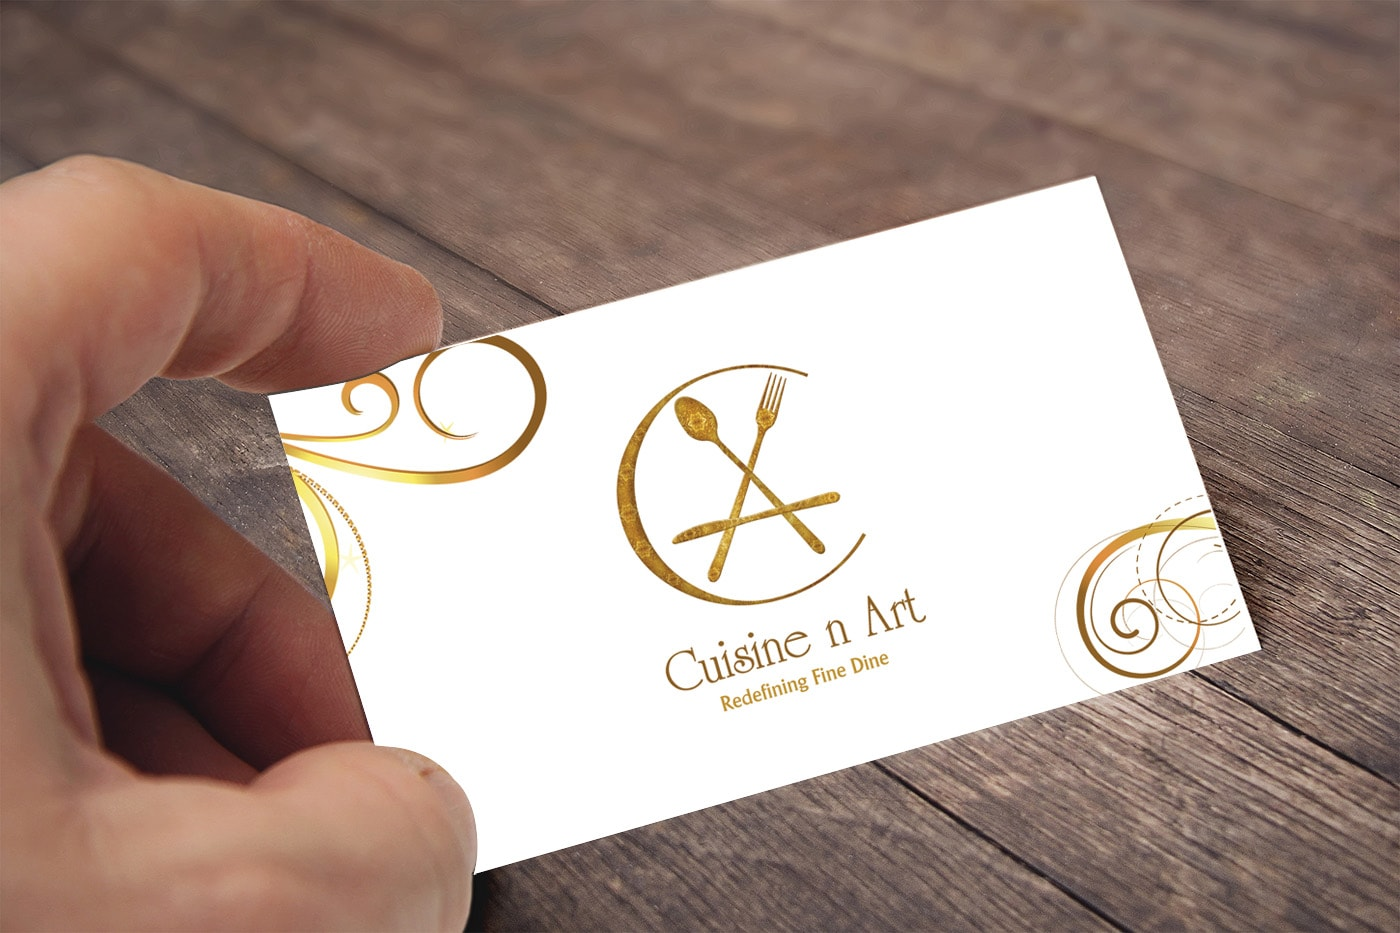 web design services, cuisinenart logo